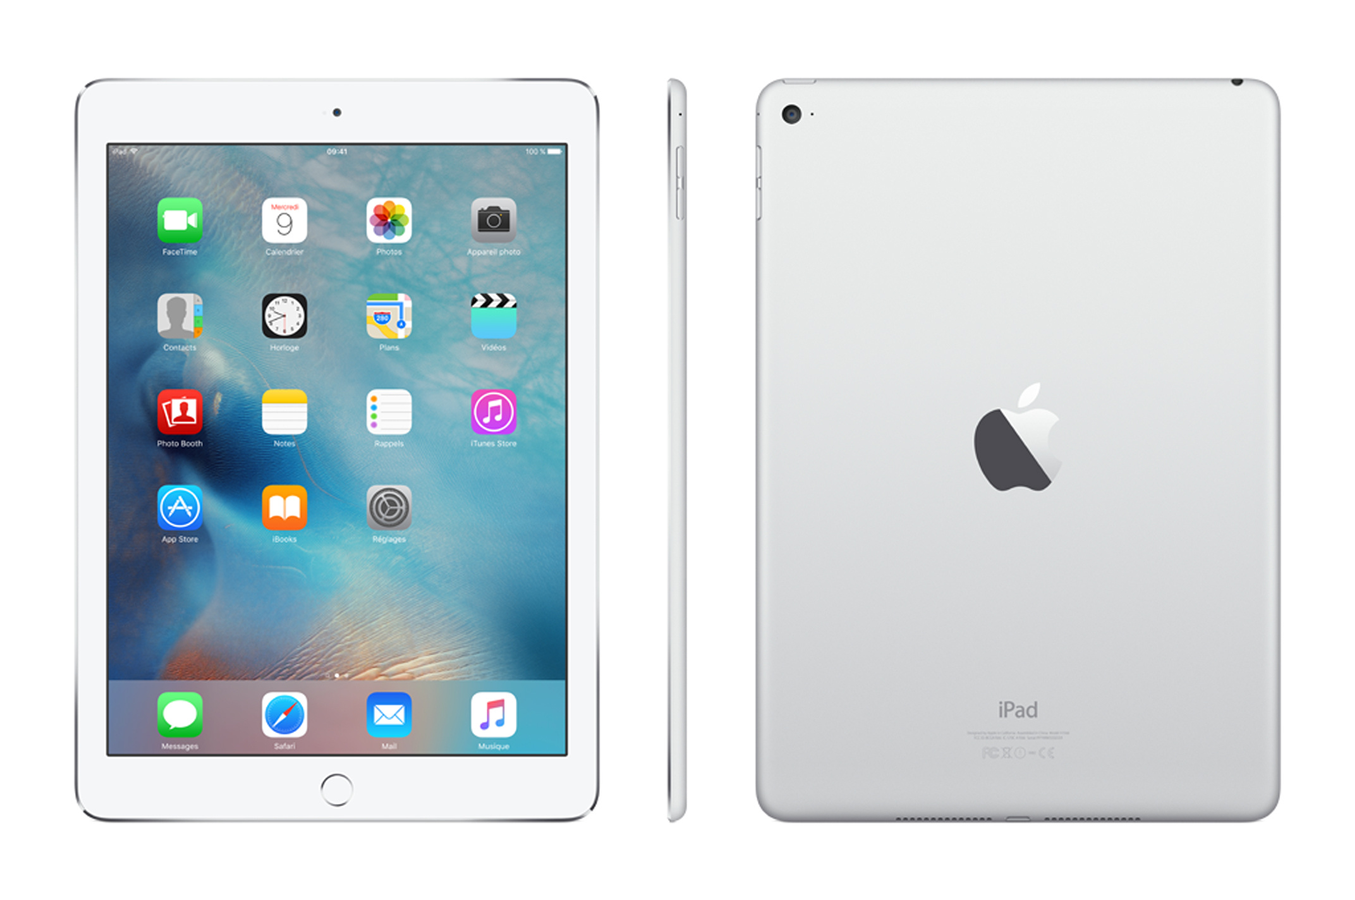 ipad apple ipad air 2 16 go wi fi argent ipad air 2 wifi